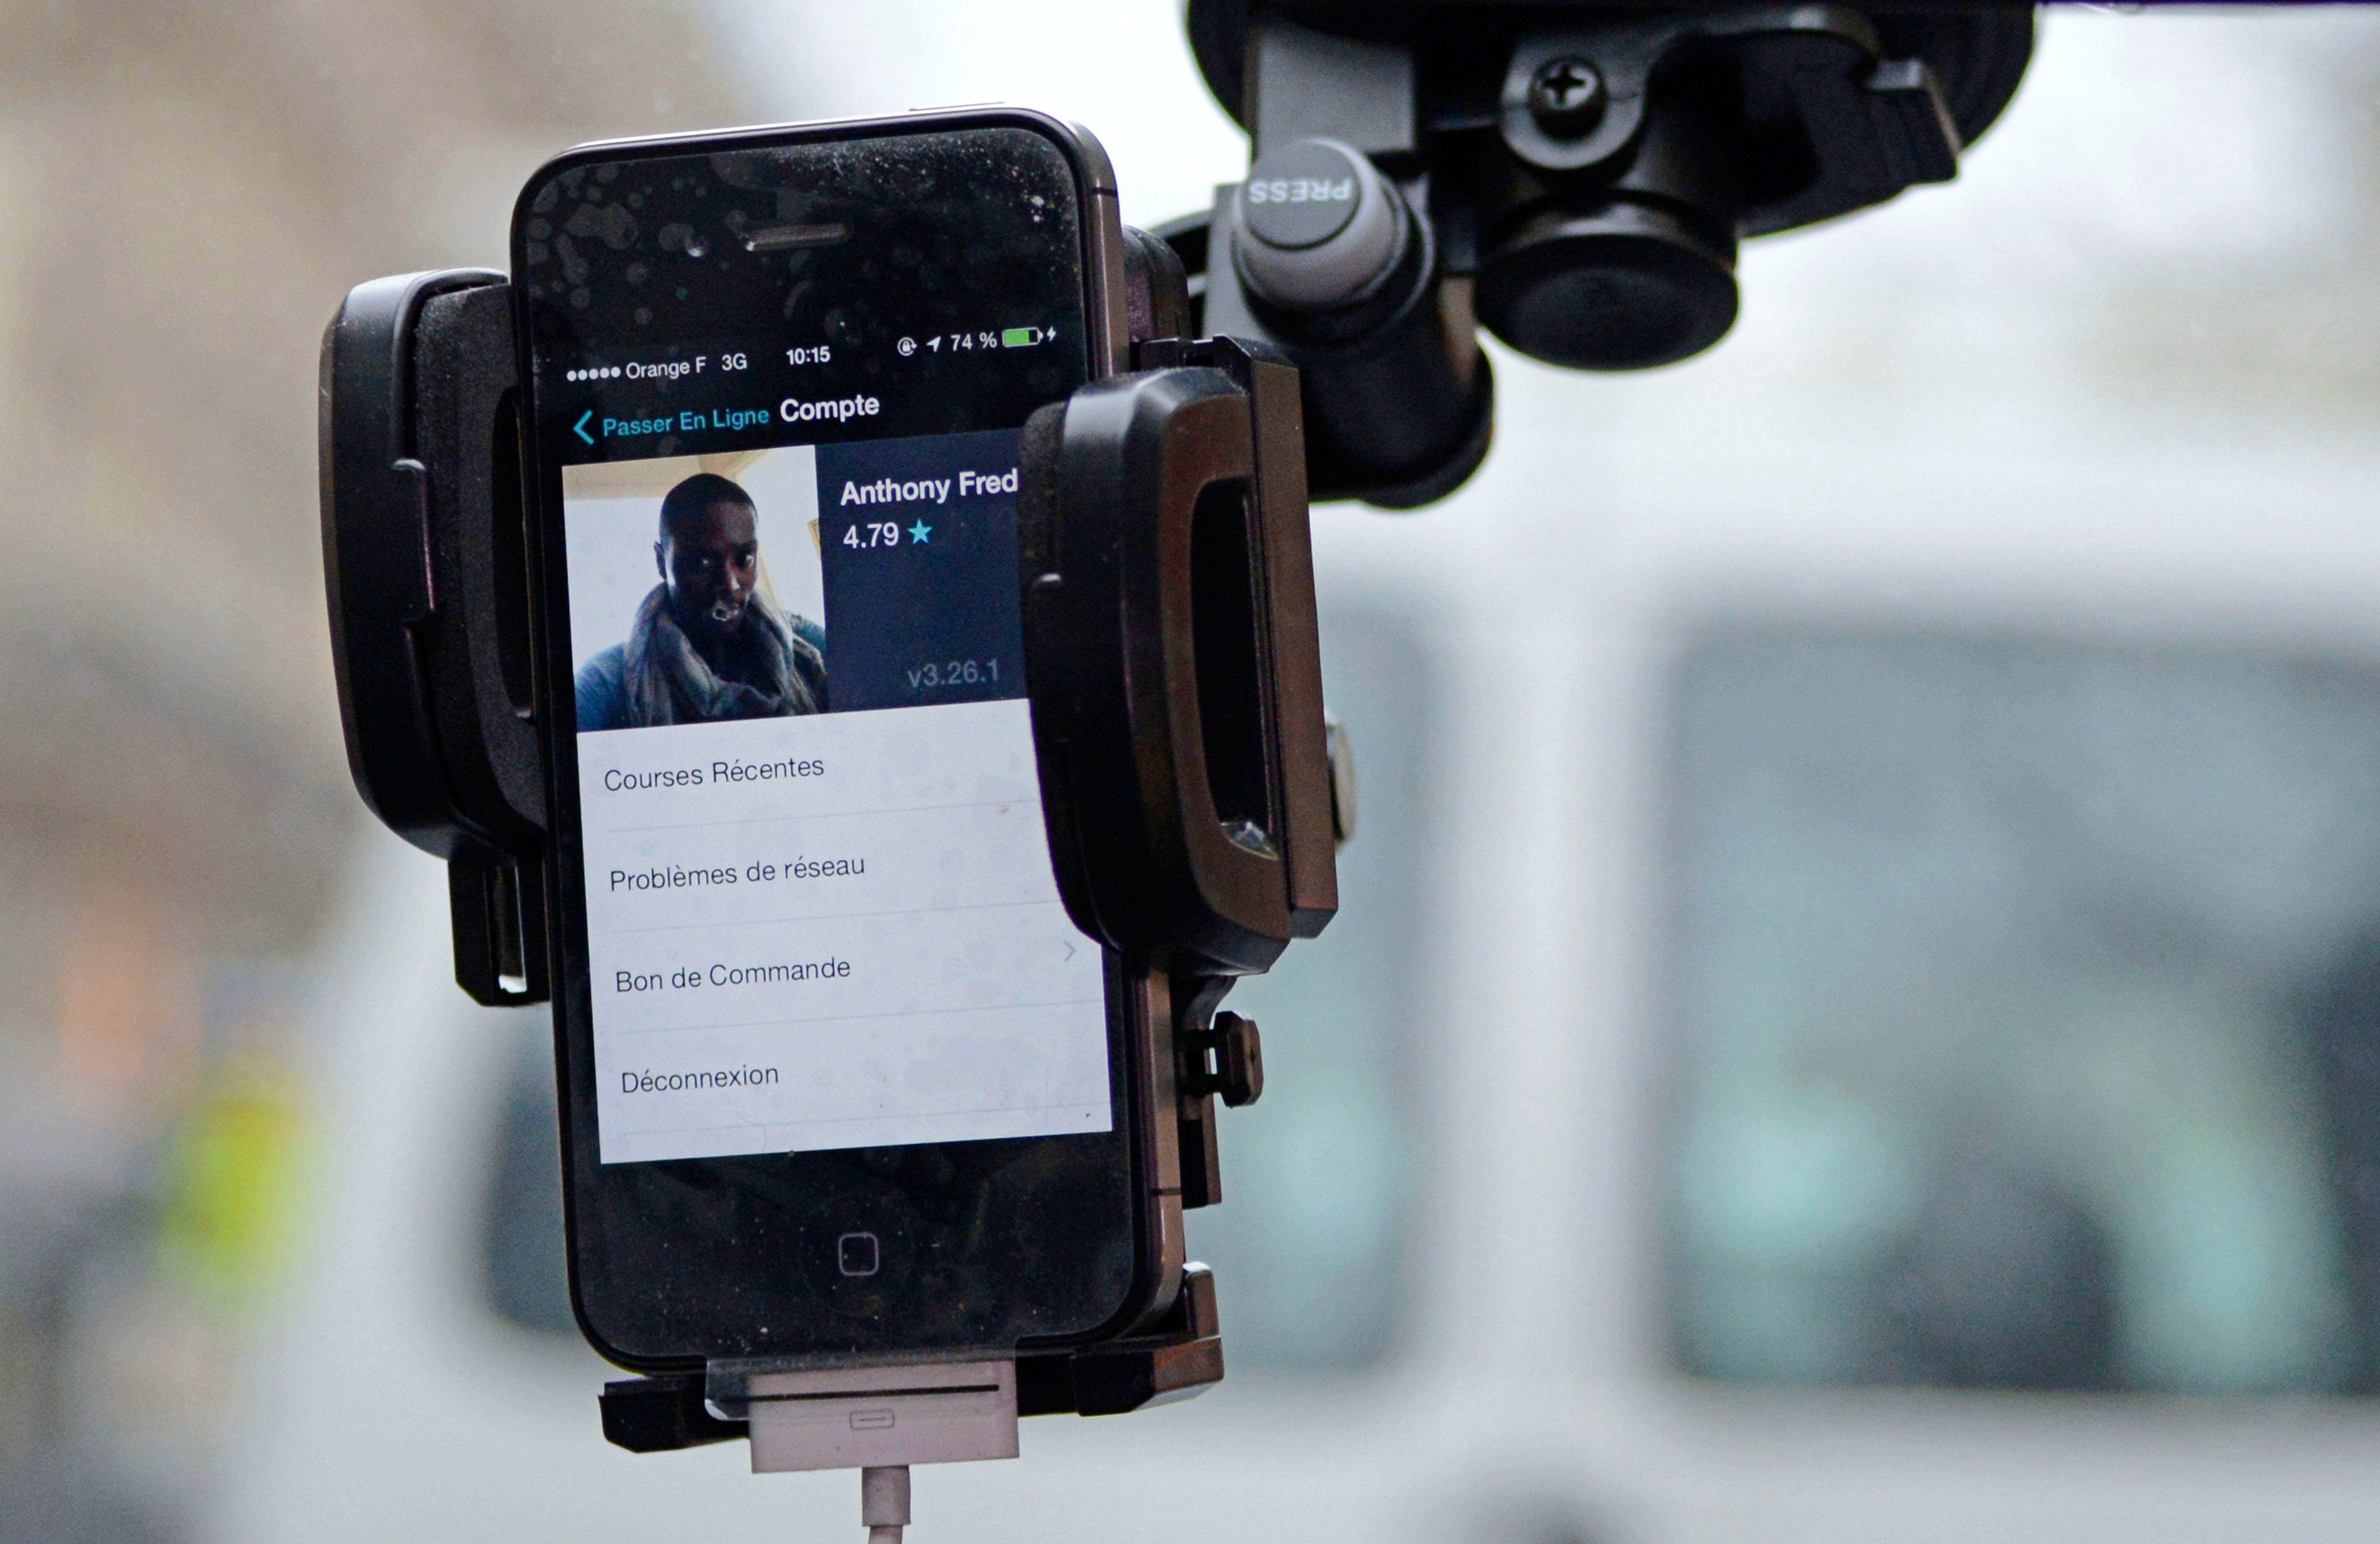 France to ban Uber's low cost service in 2015